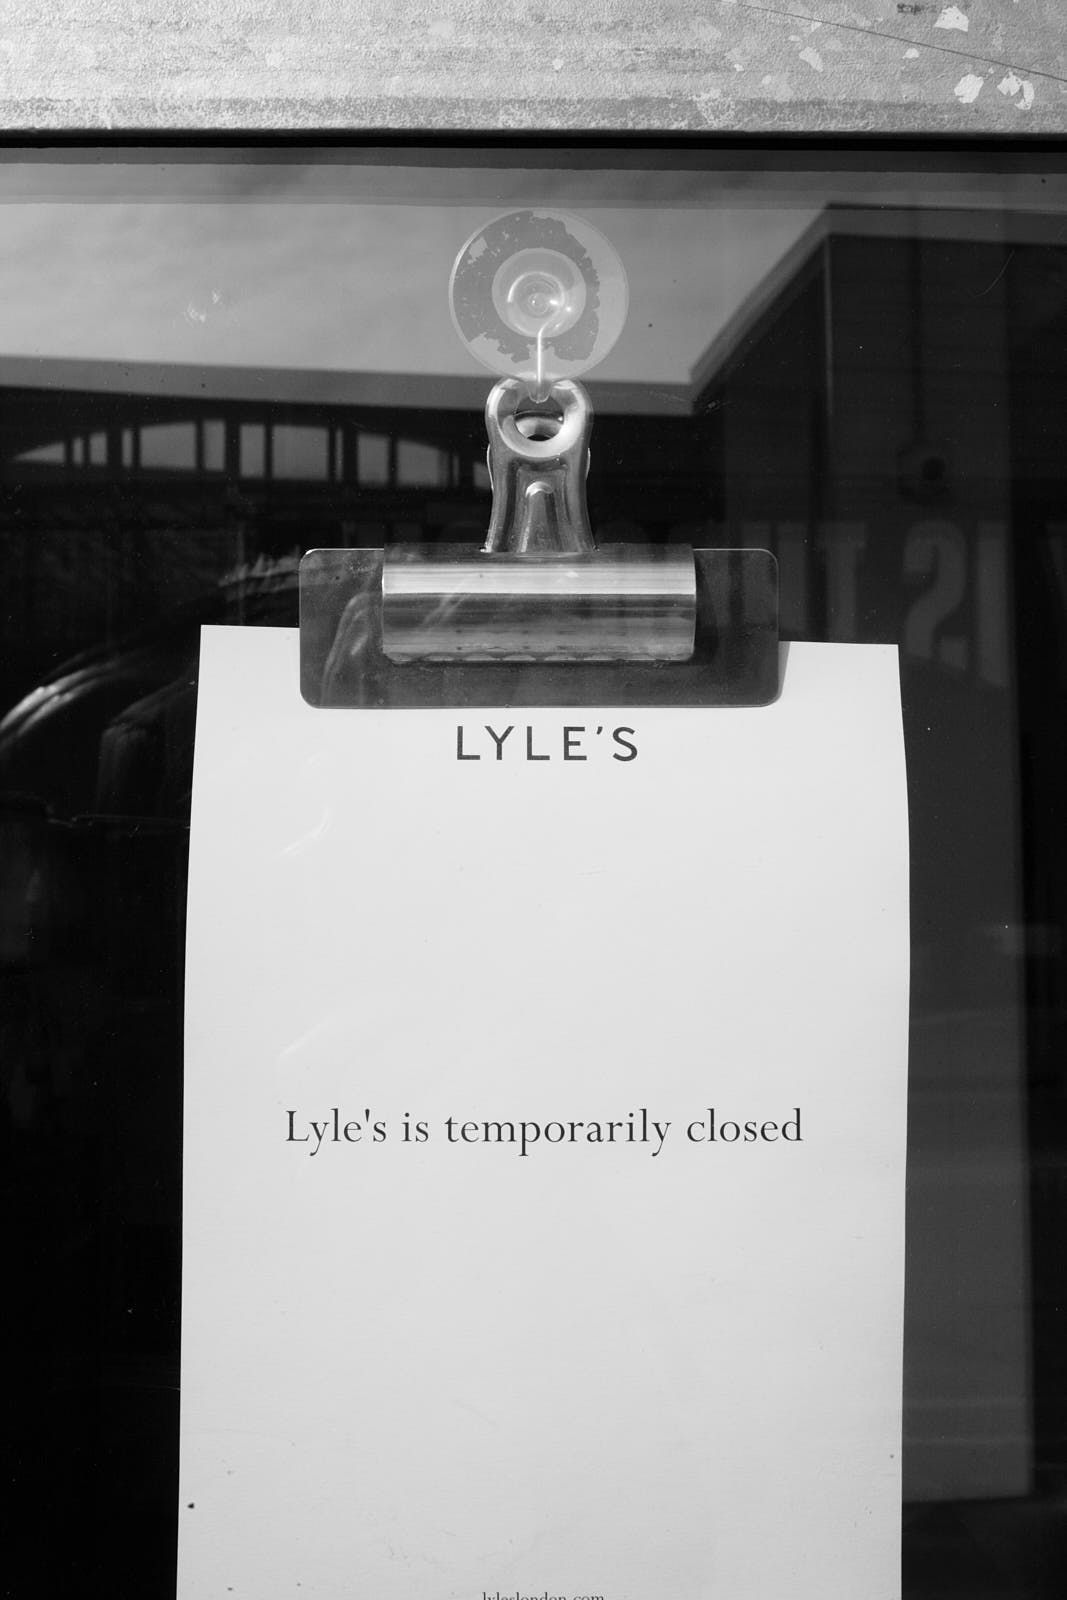 A closure notice on the door of Lyle's, the Michelin-starred restaurant in Shoreditch